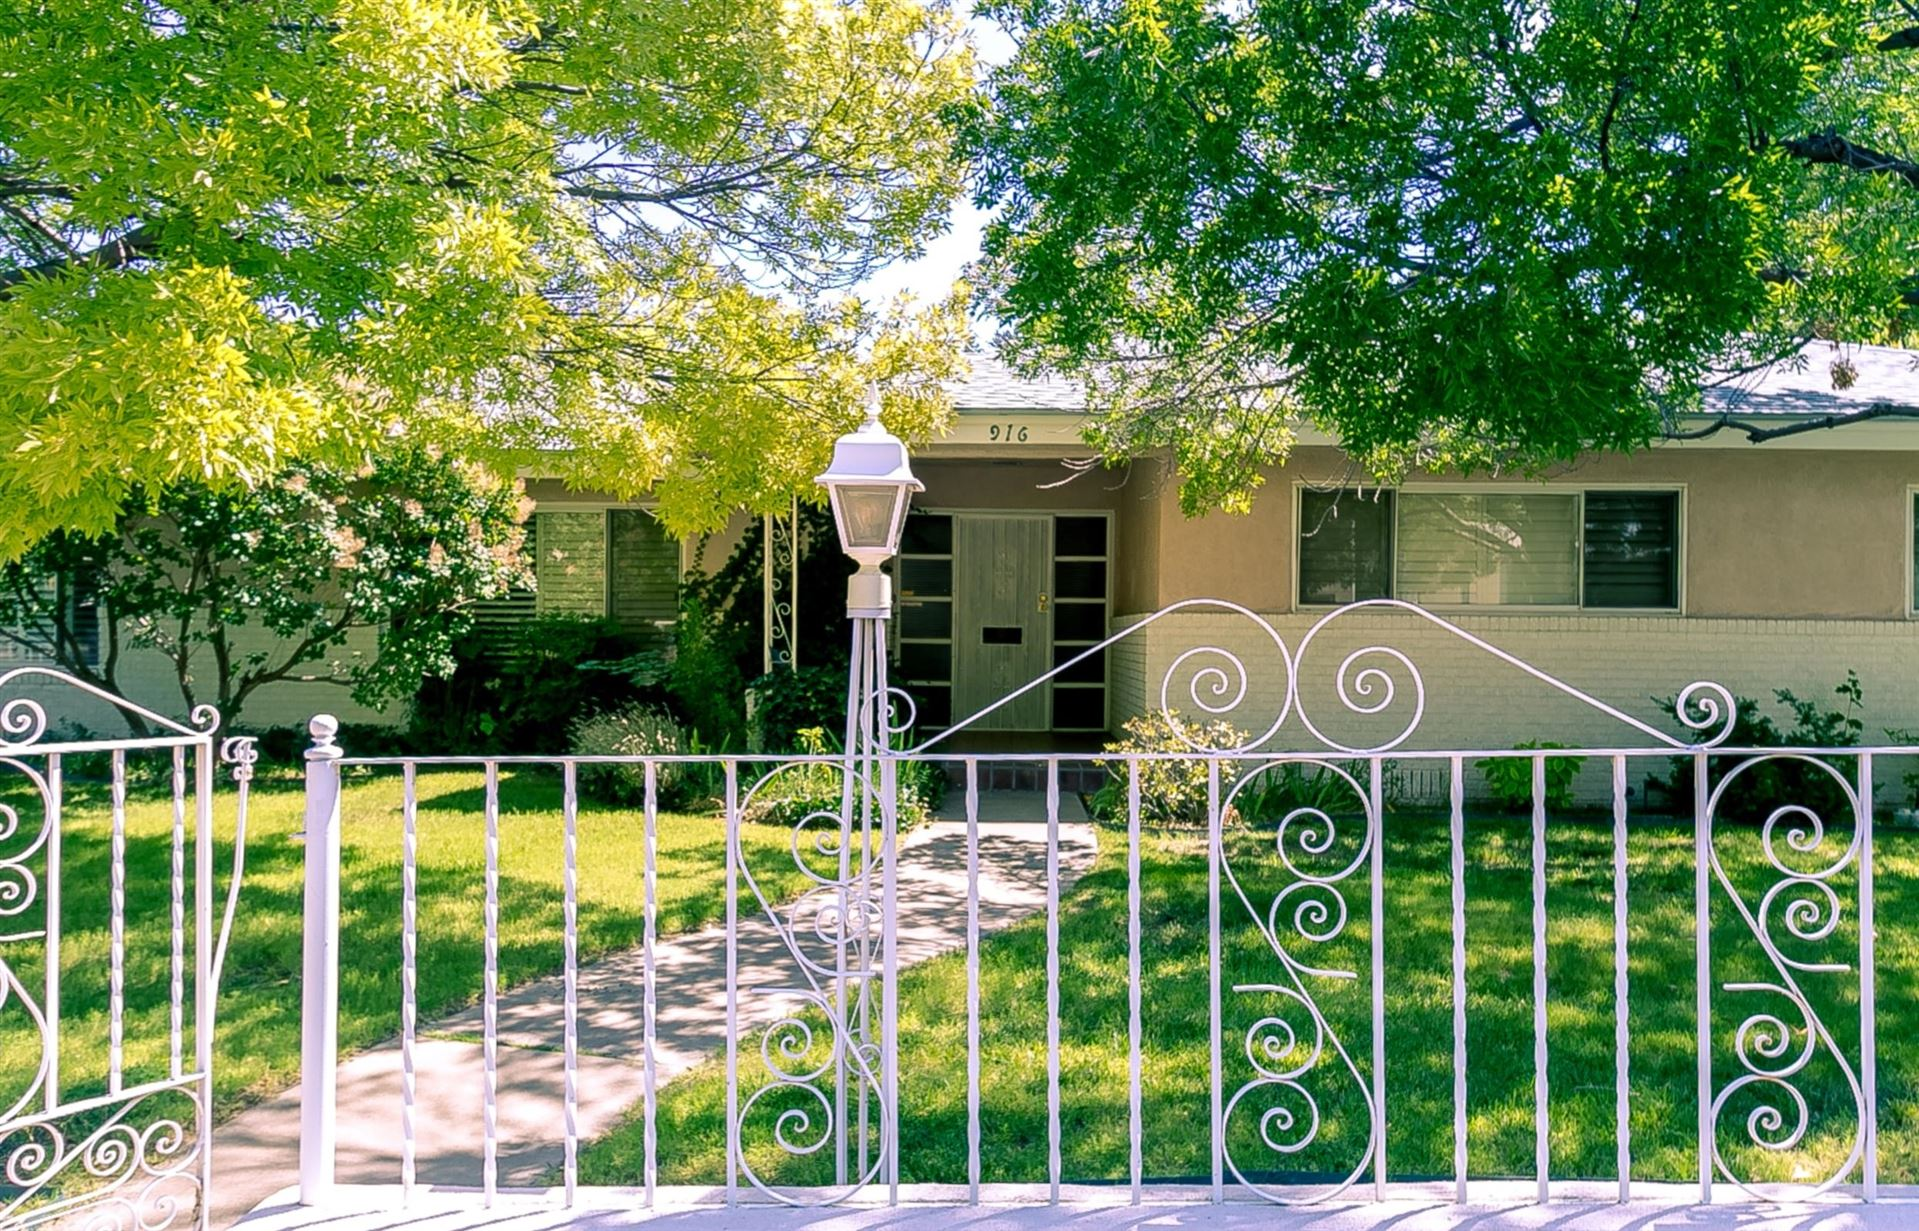 Photo for 916 Solano Drive NE, Albuquerque, NM 87110 (MLS # 953899)